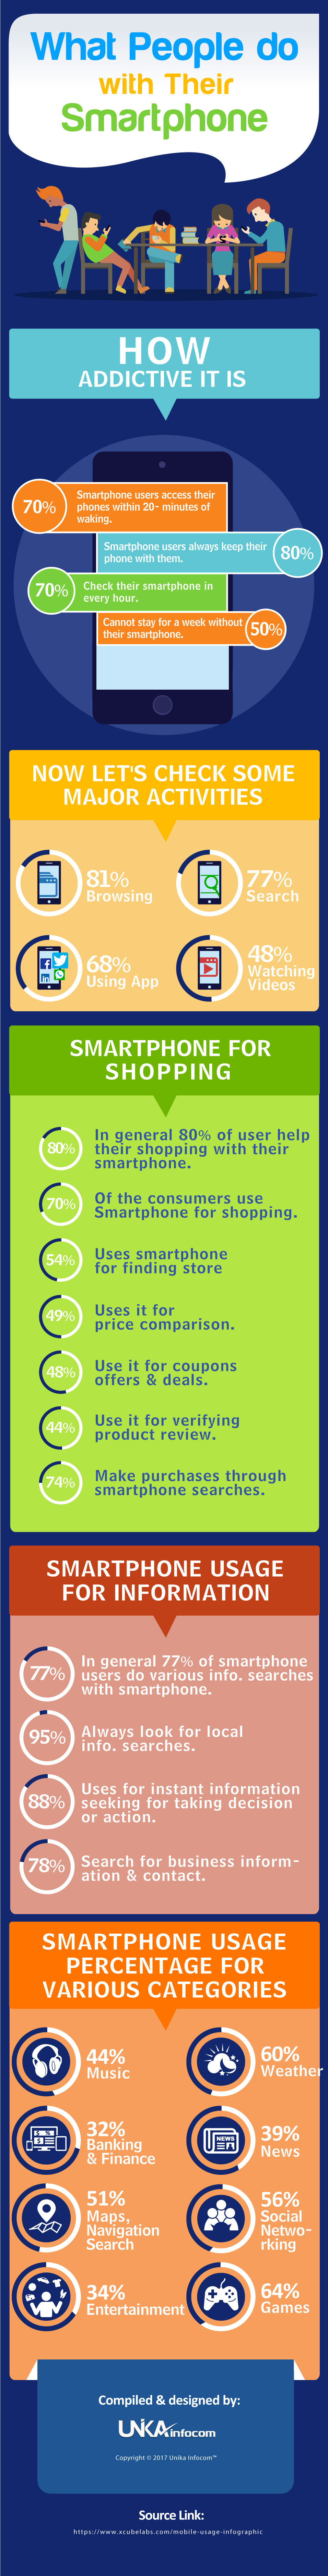 What People Do with there Smartphone Trends and Statistics [Infographic]